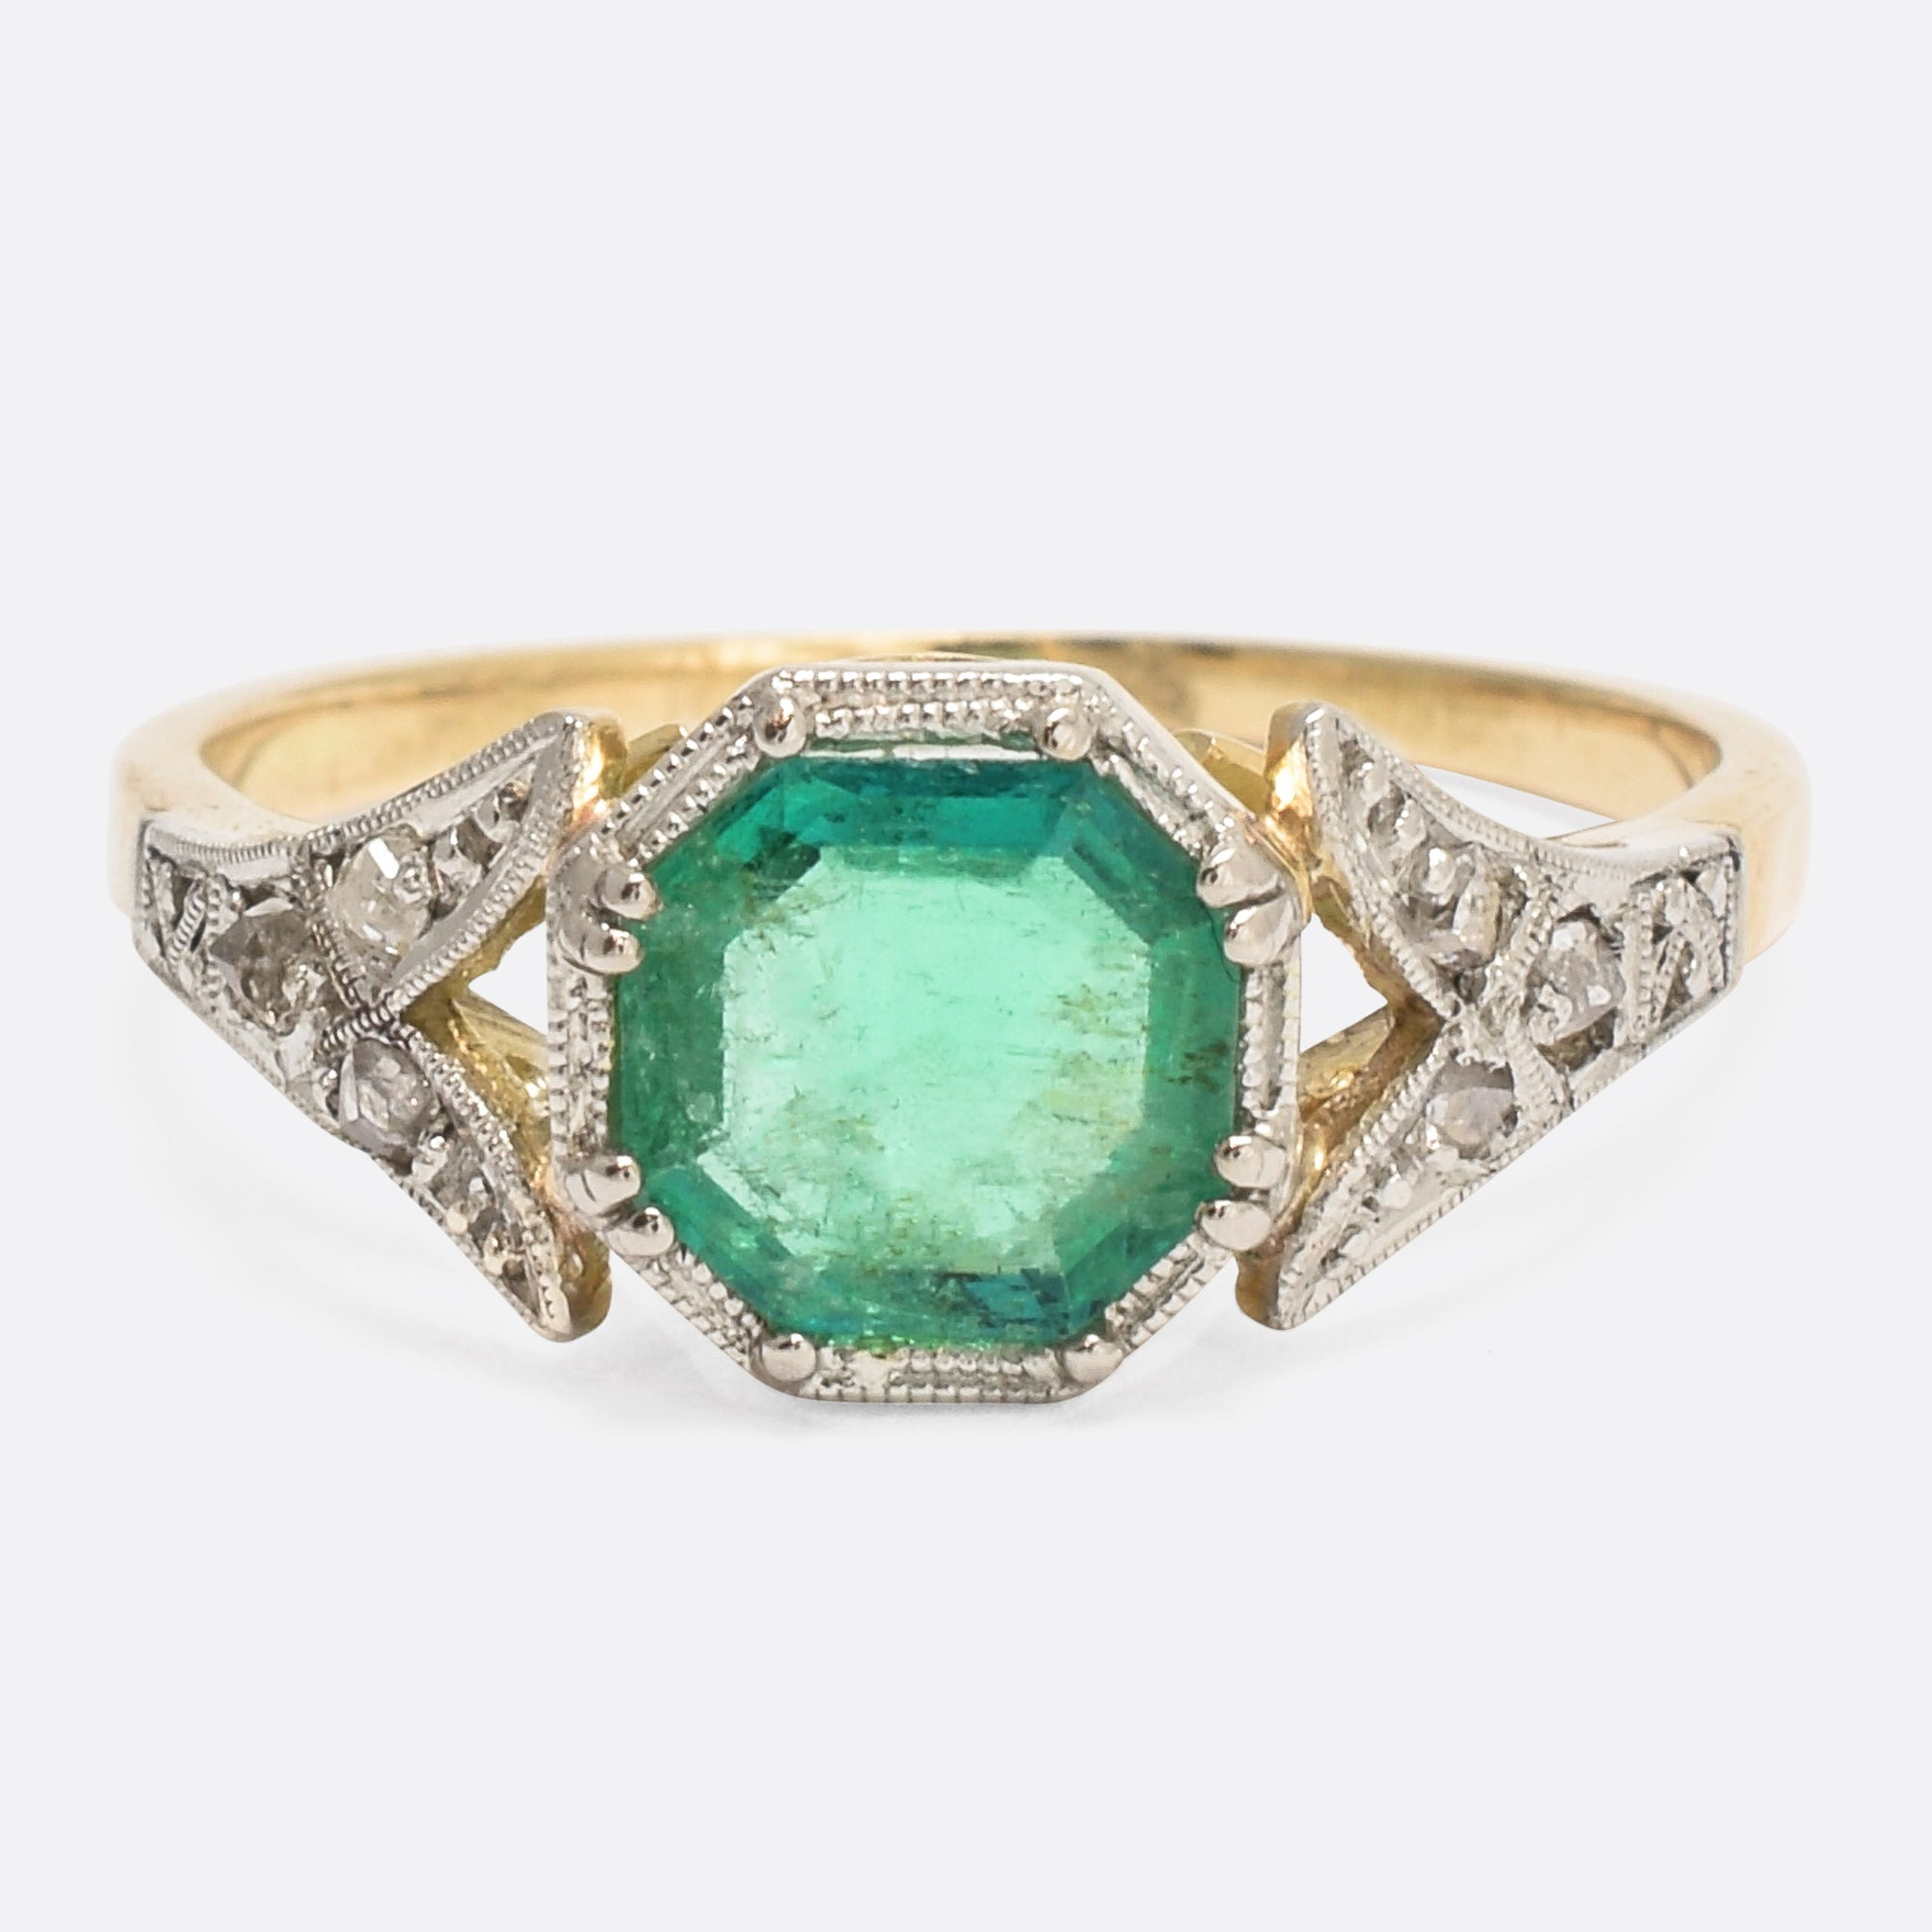 rings objects midwest diamond emeral stamped item ring ruby emerald and art natural crossover gold rh lane french